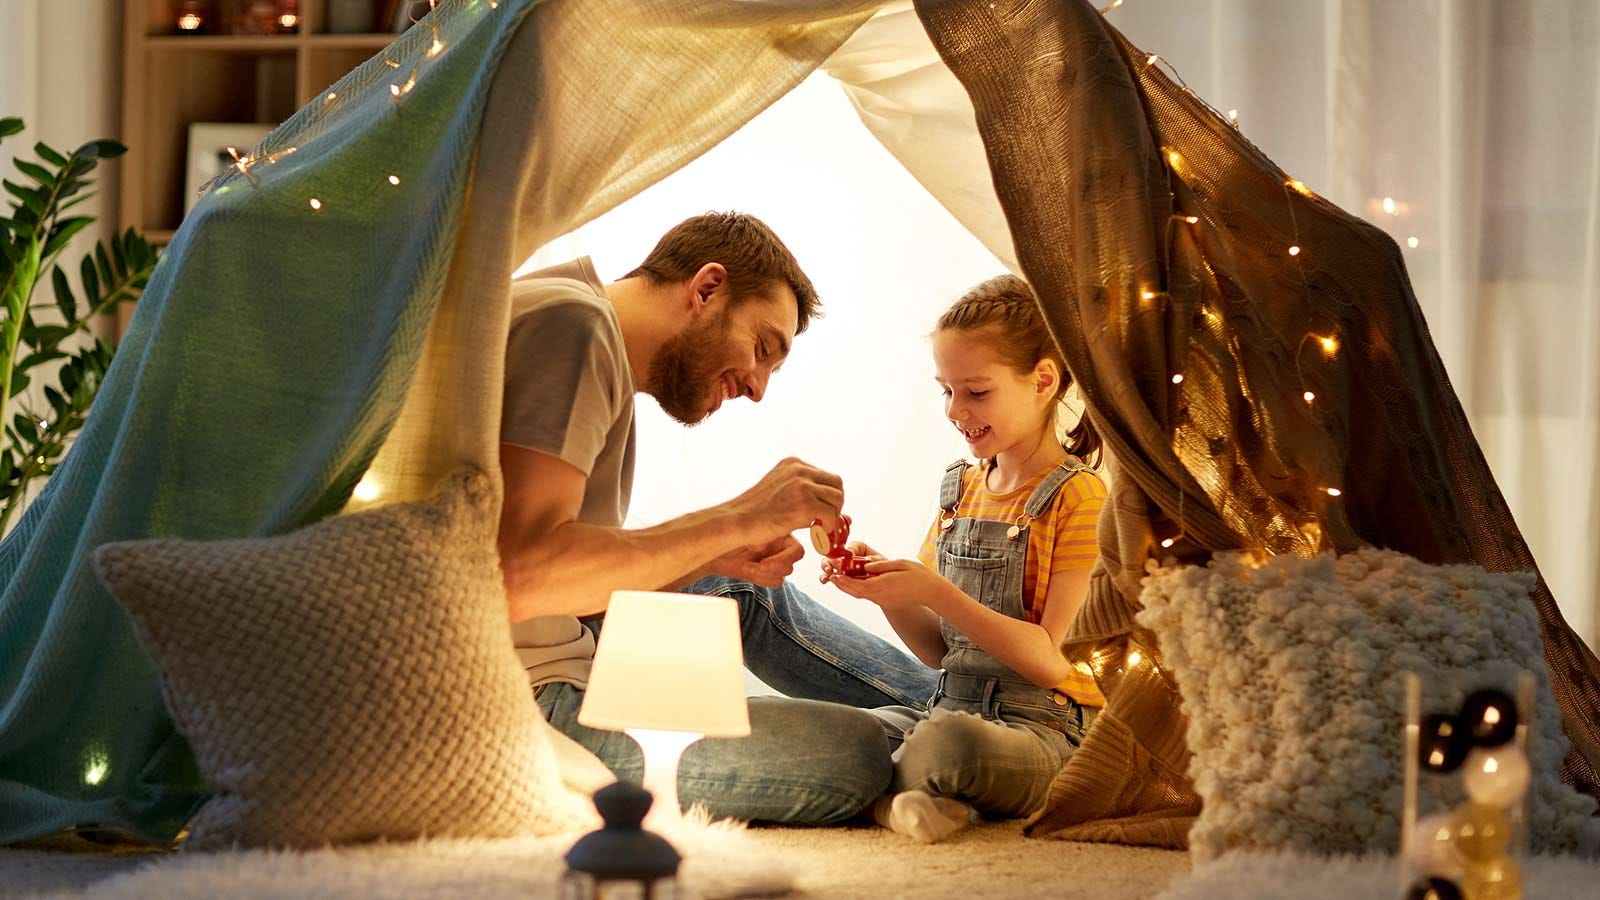 A father and daughter having a tea party in a tent fort.